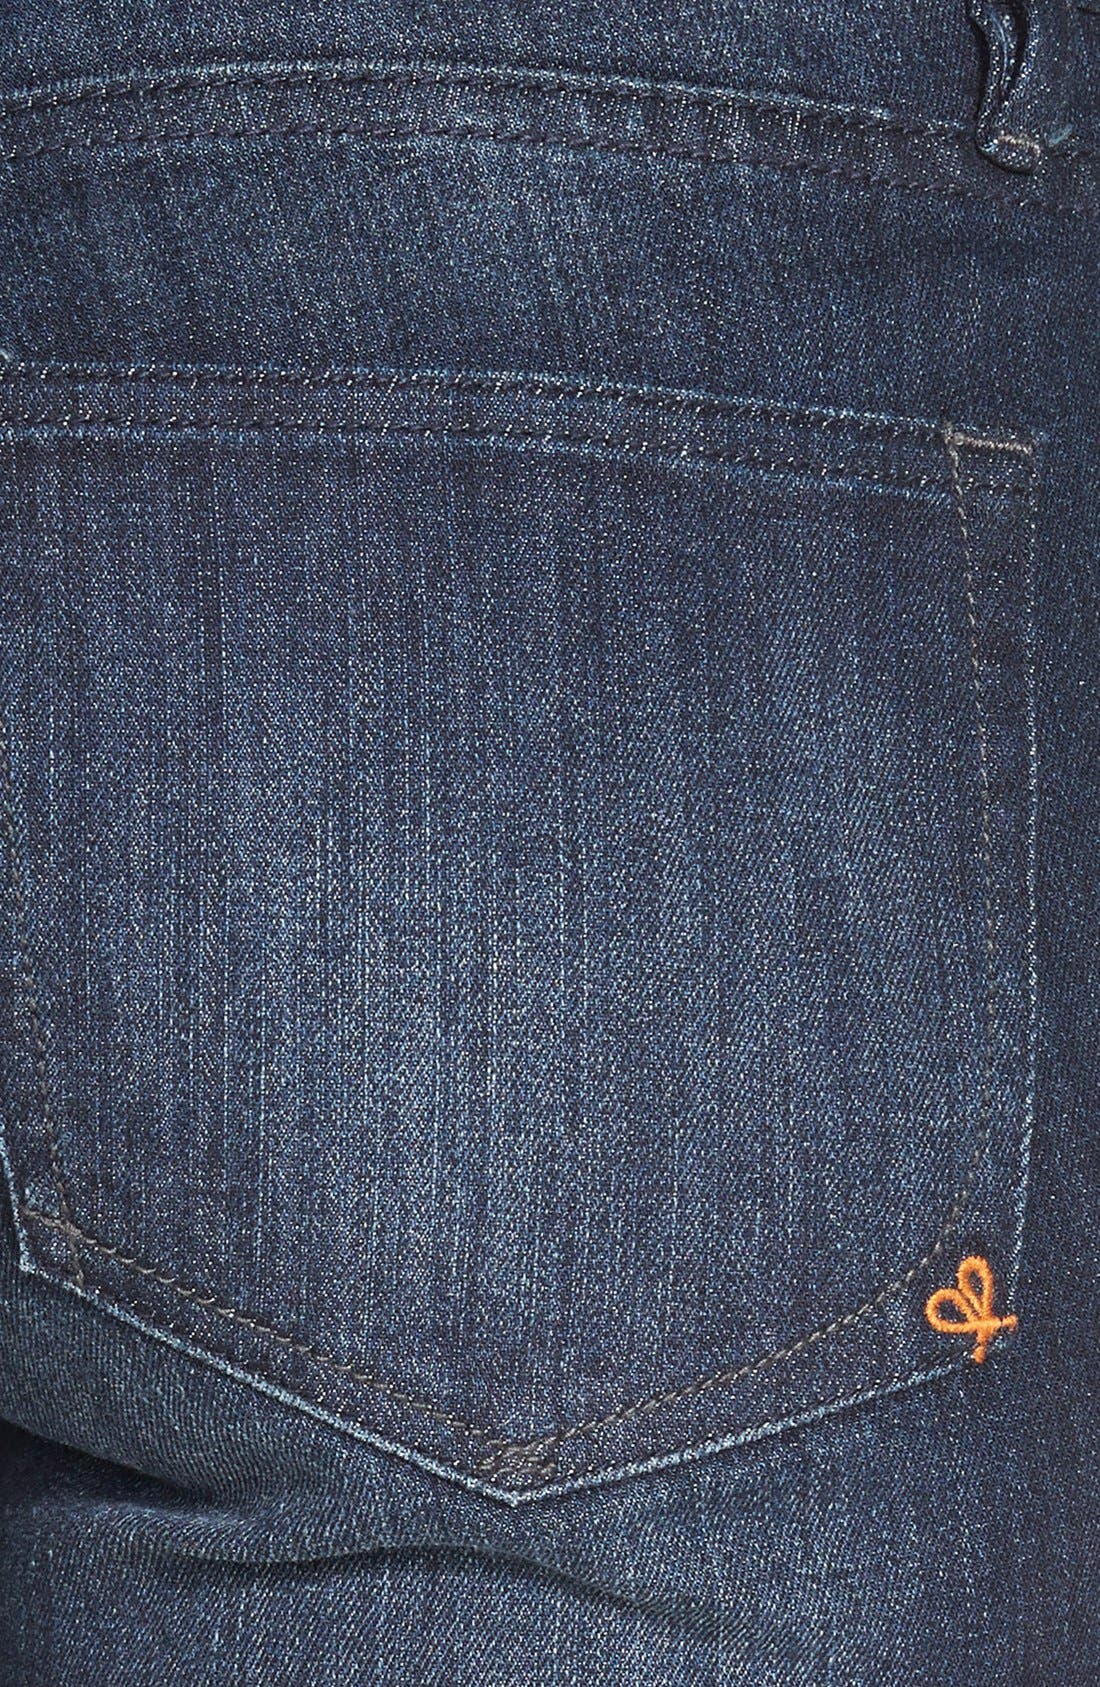 Alternate Image 3  - Dittos Mid Rise Super Skinny Jeans (Blue)